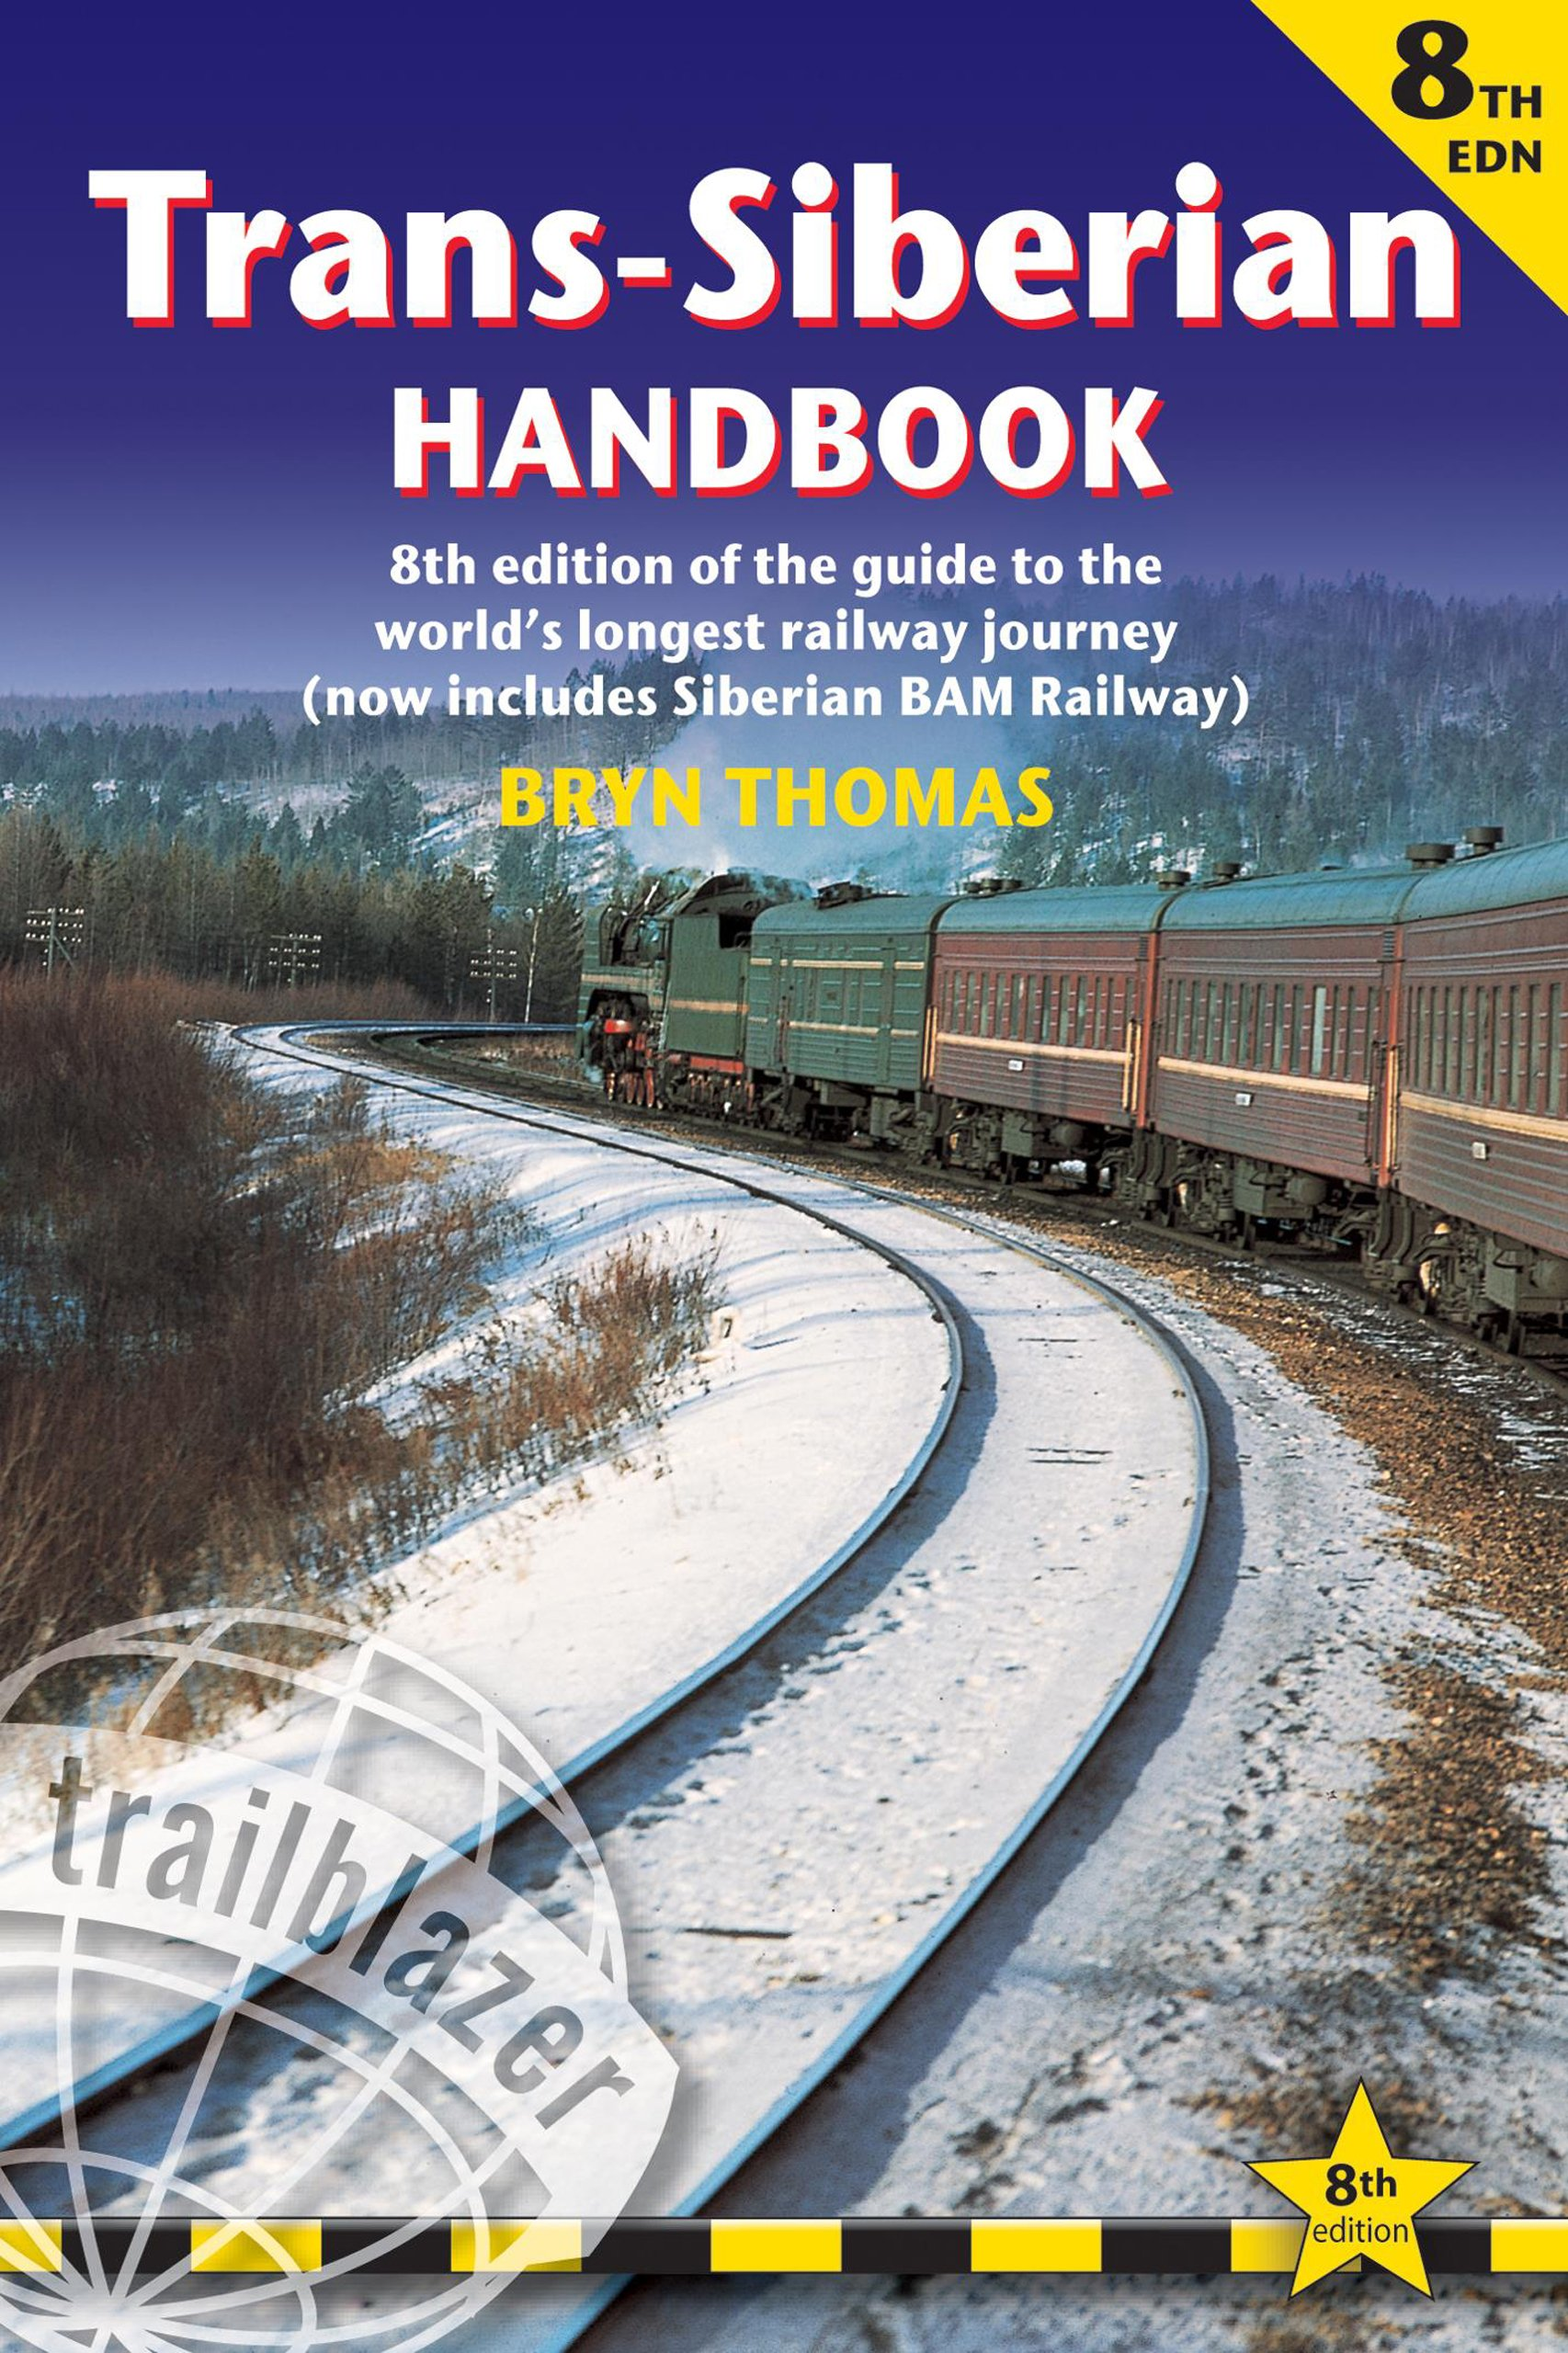 Trans-Siberian Handbook: Trans-Siberian, Trans-Mongolian, Trans-Manchurian and Siberian Bam Routes (Includes Guides to 25 Cities) (Trailblazer Guides)